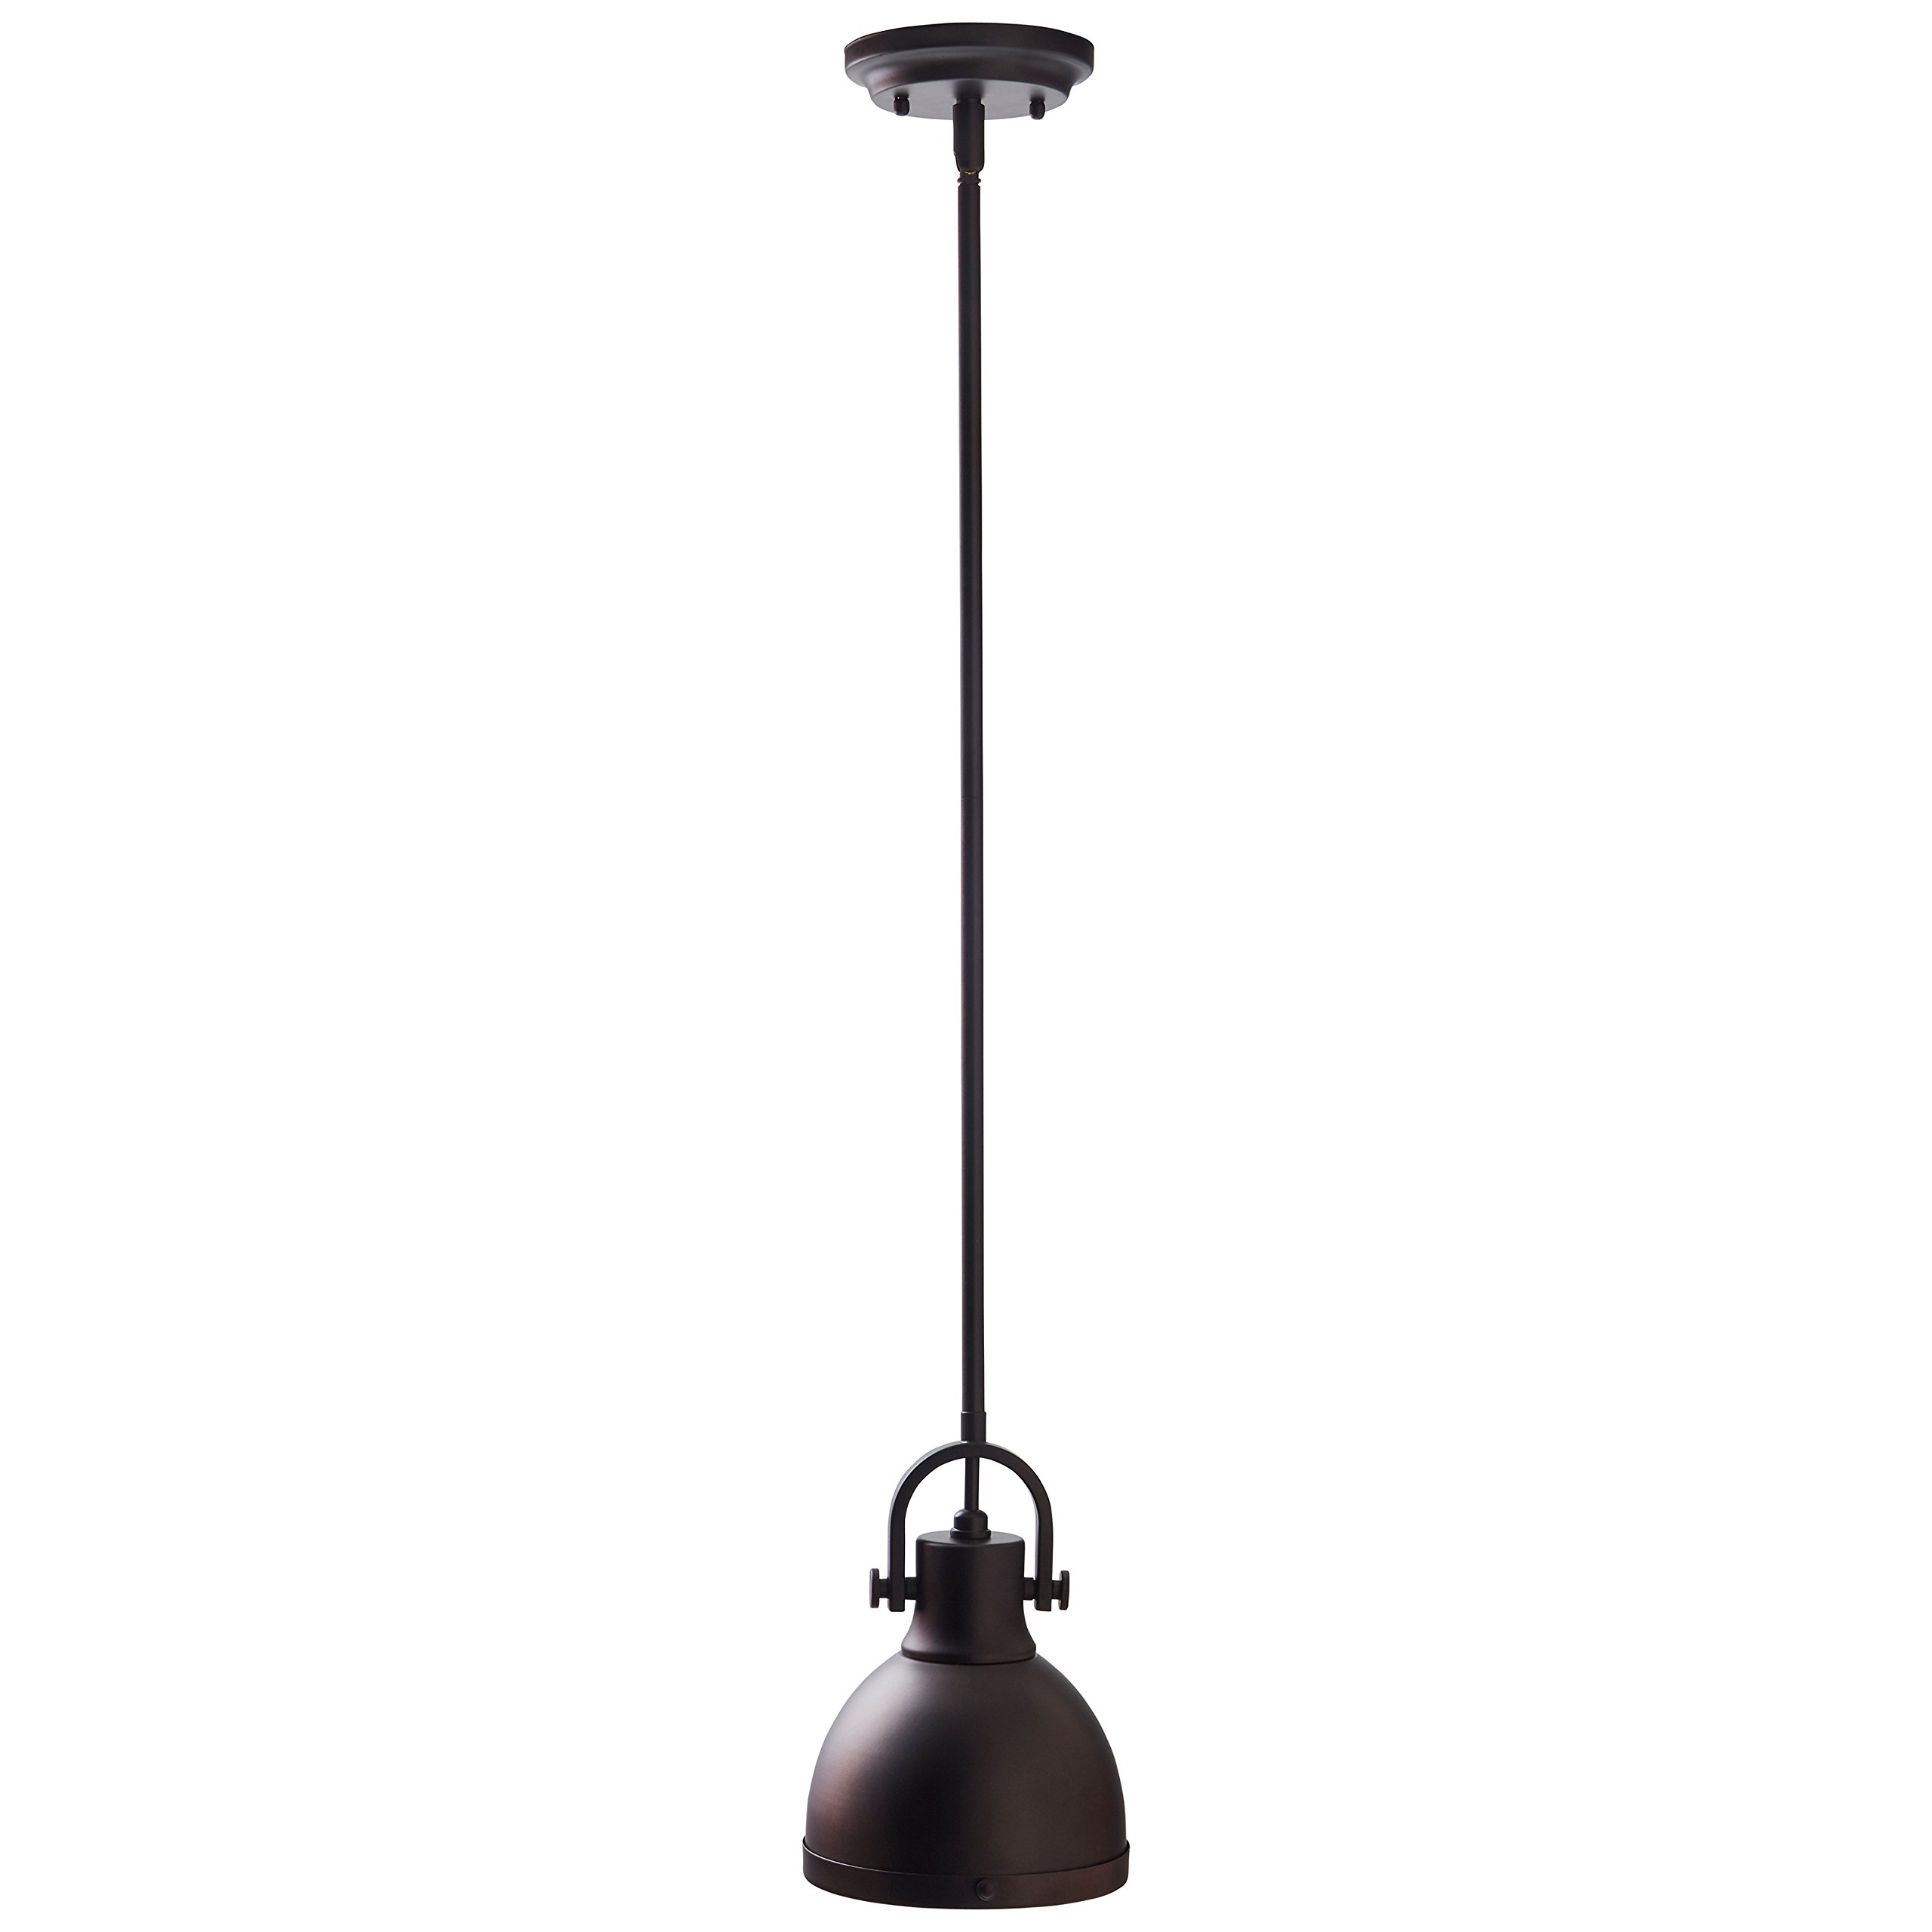 Stone & Beam Emmons Industrial Pendant with Bulb, 11.25''-59.25'', Oil-Rubbed Bronze